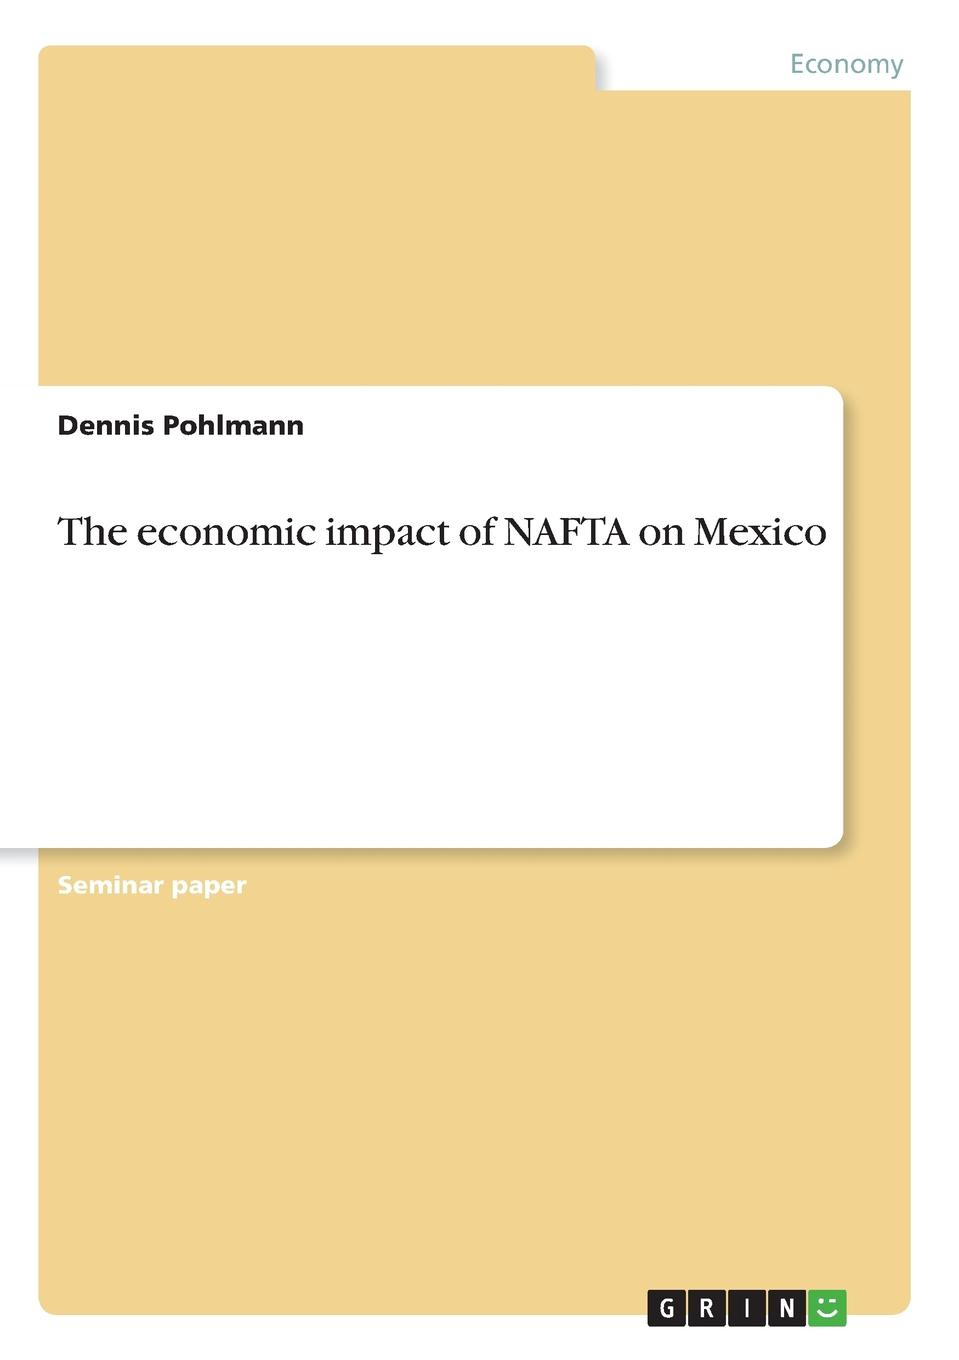 Dennis Pohlmann The economic impact of NAFTA on Mexico vishaal kishore ricardo s gauntlet economic fiction and the flawed case for free trade